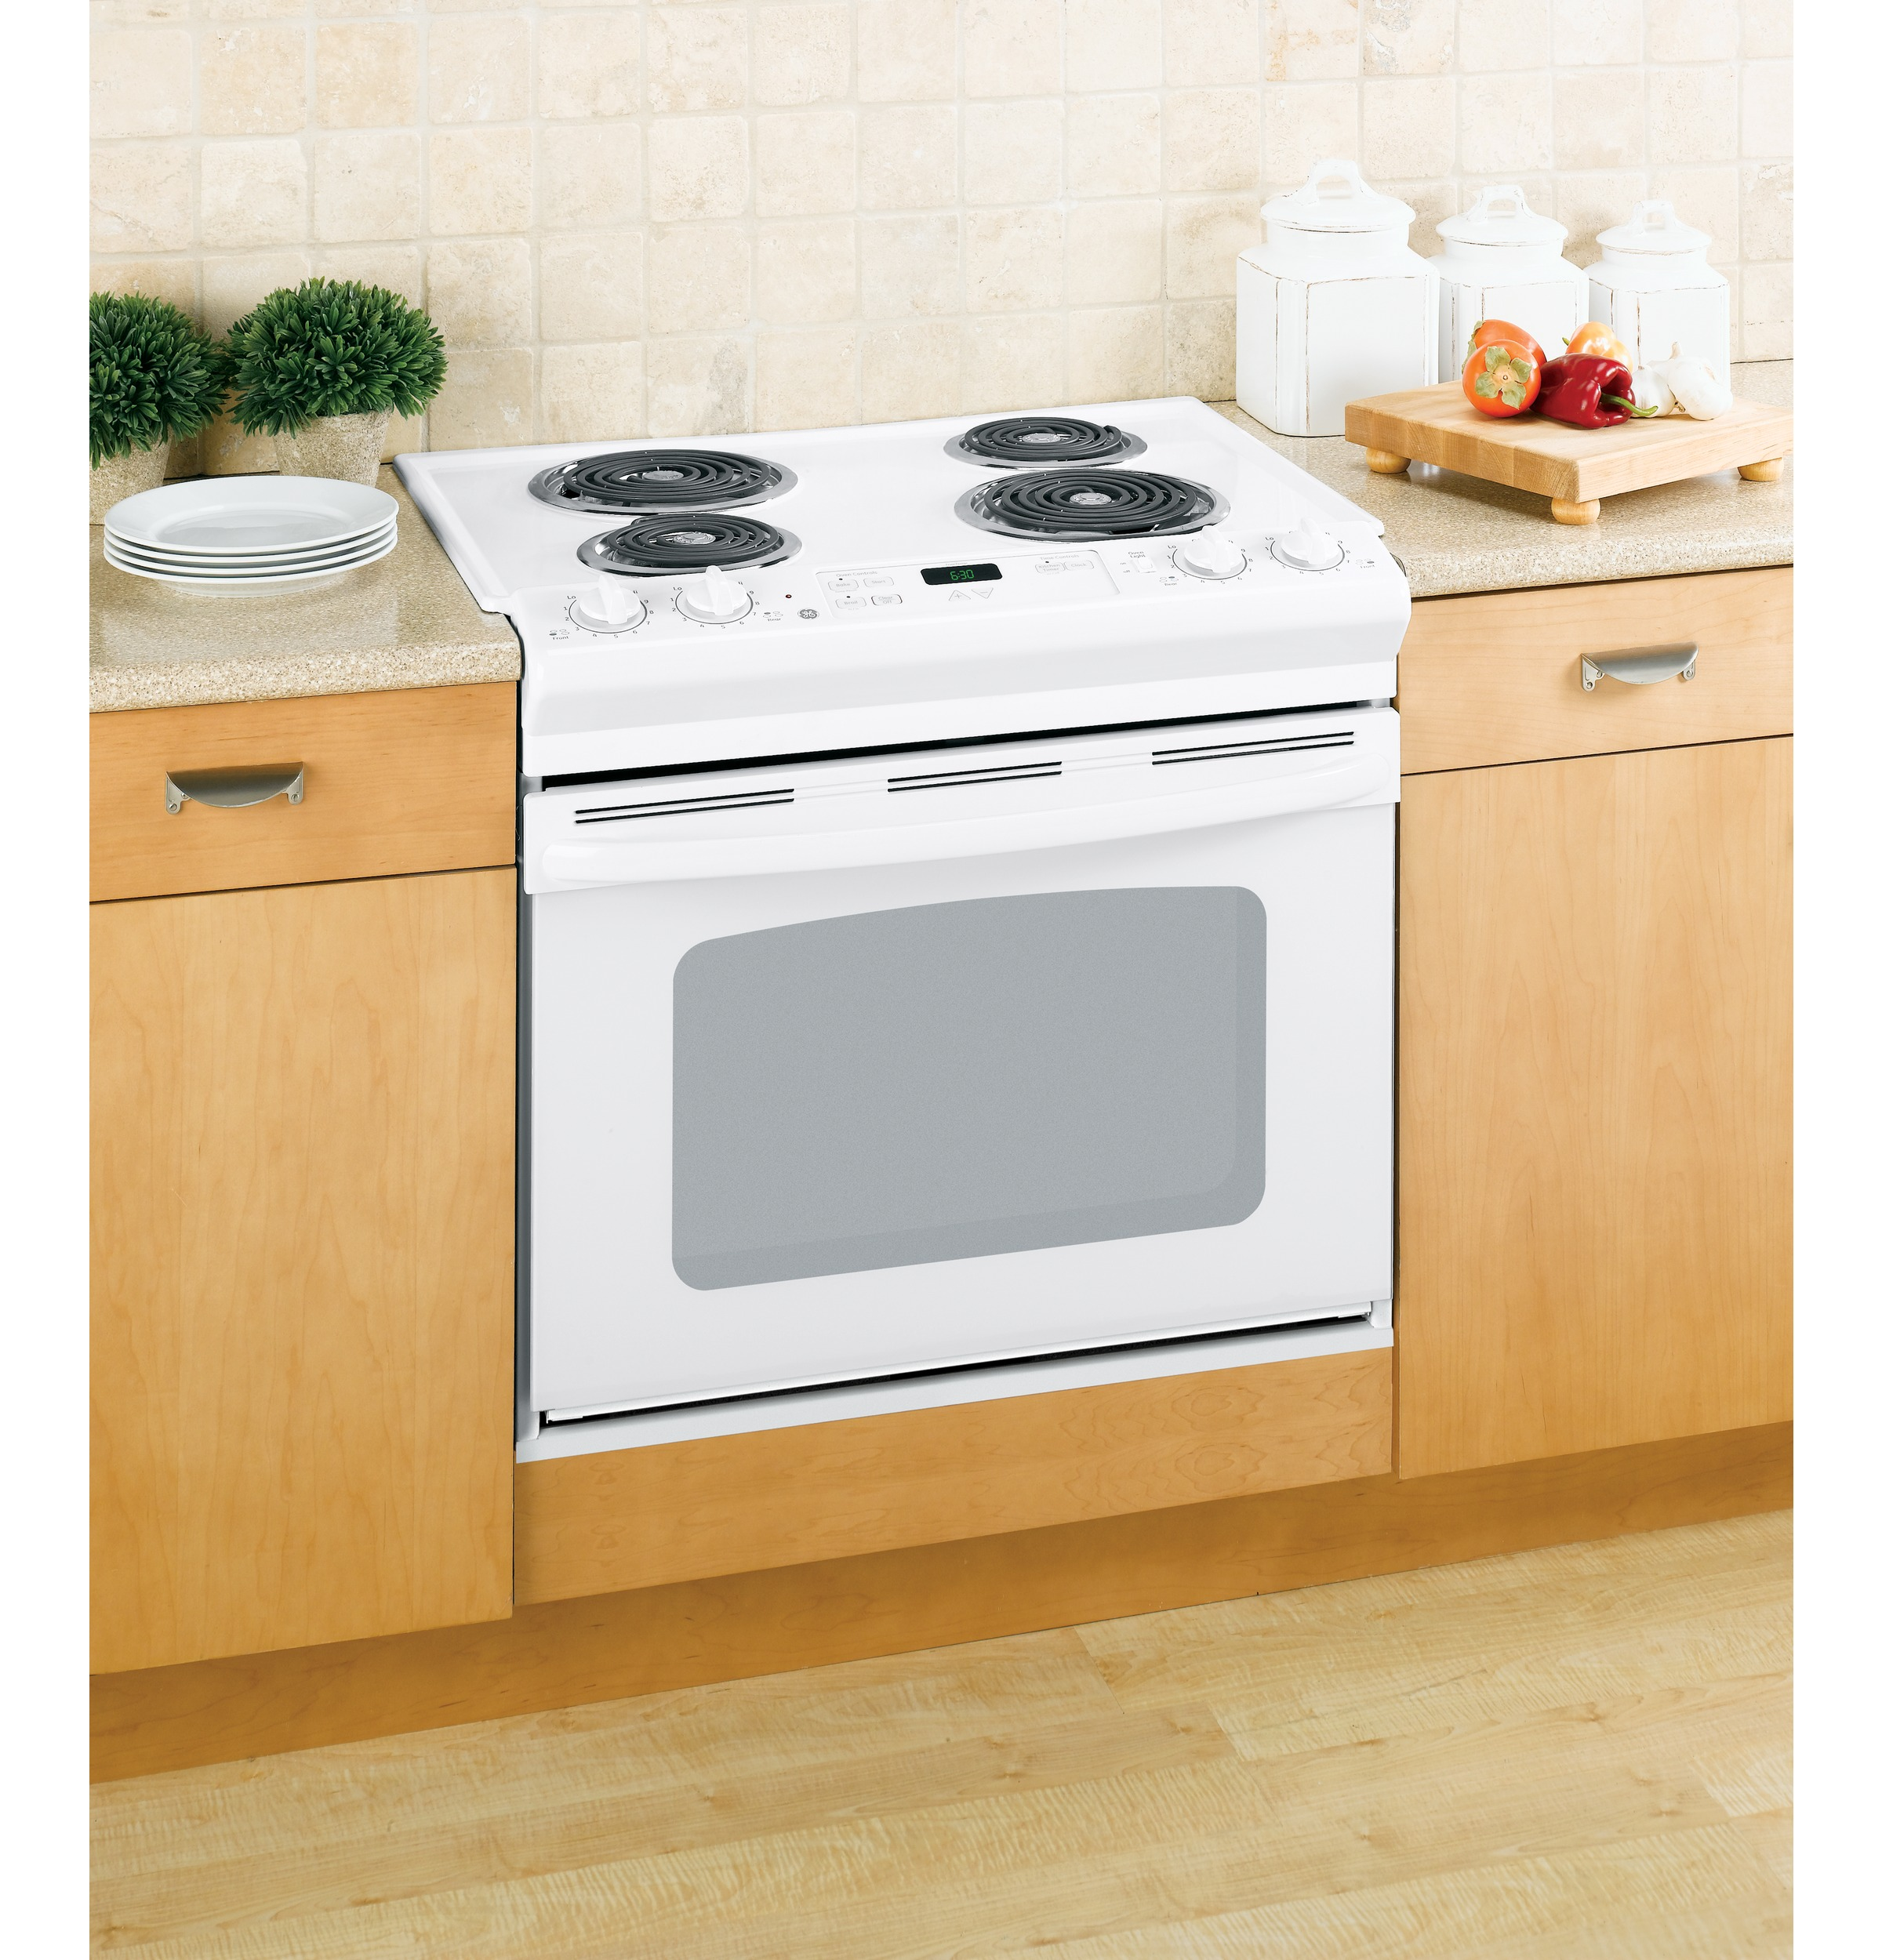 ge 30 drop in electric range with standard clean oven jds28dnww ge appliances. Black Bedroom Furniture Sets. Home Design Ideas